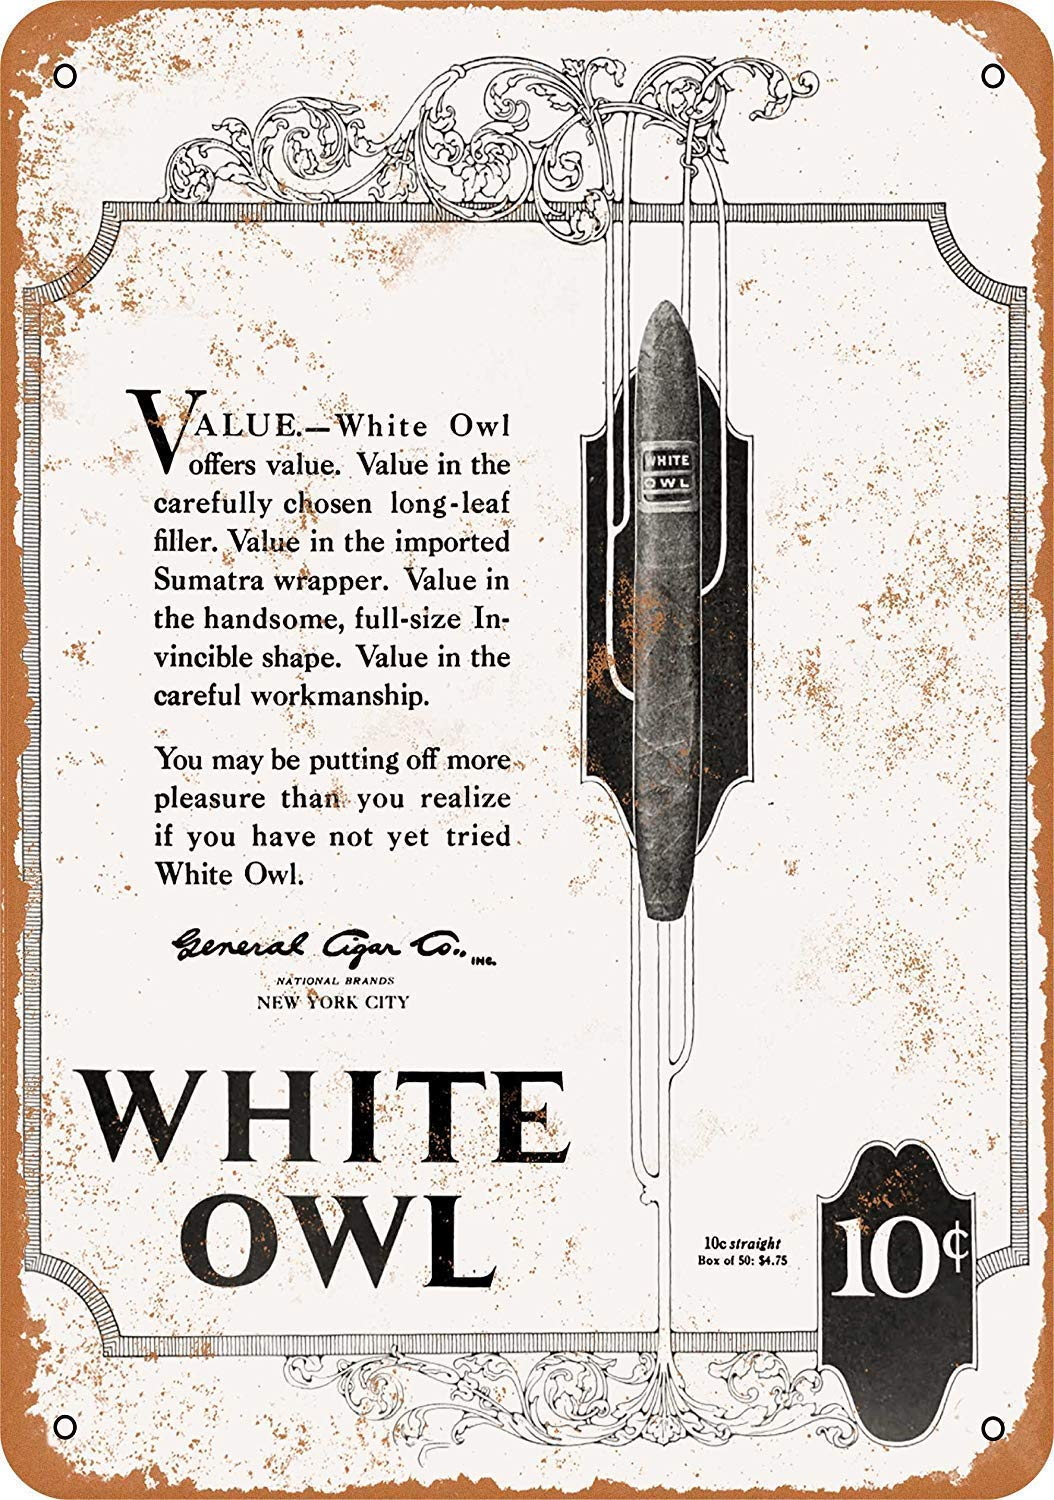 Kia Haop White Owl Cigars Metal Fender Cartel De Chapa Placa ...